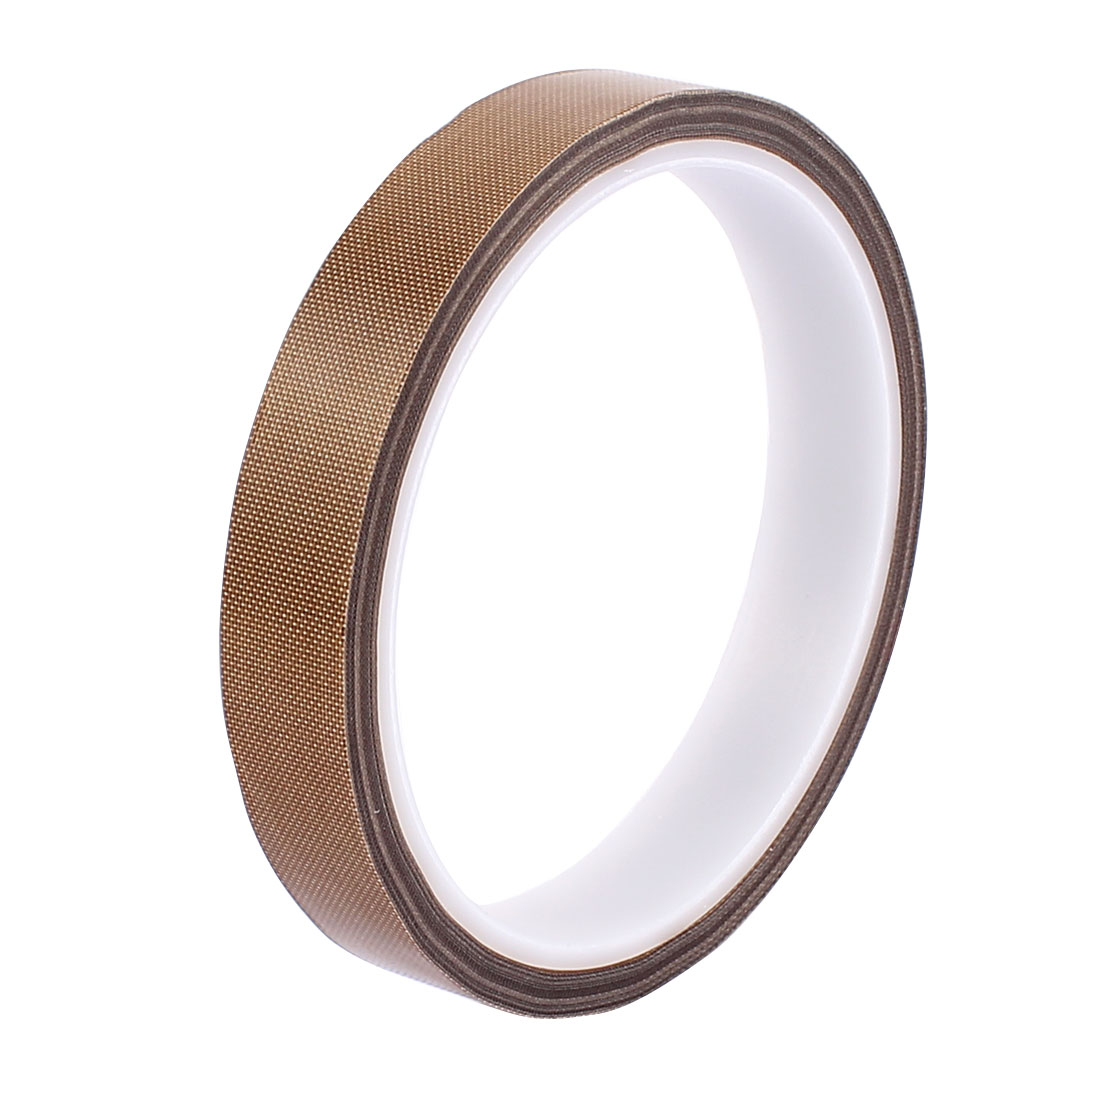 15mm Width 10M Long 0.13mm Thickness Nonstick High Temperature PTFE Adhesive Tape